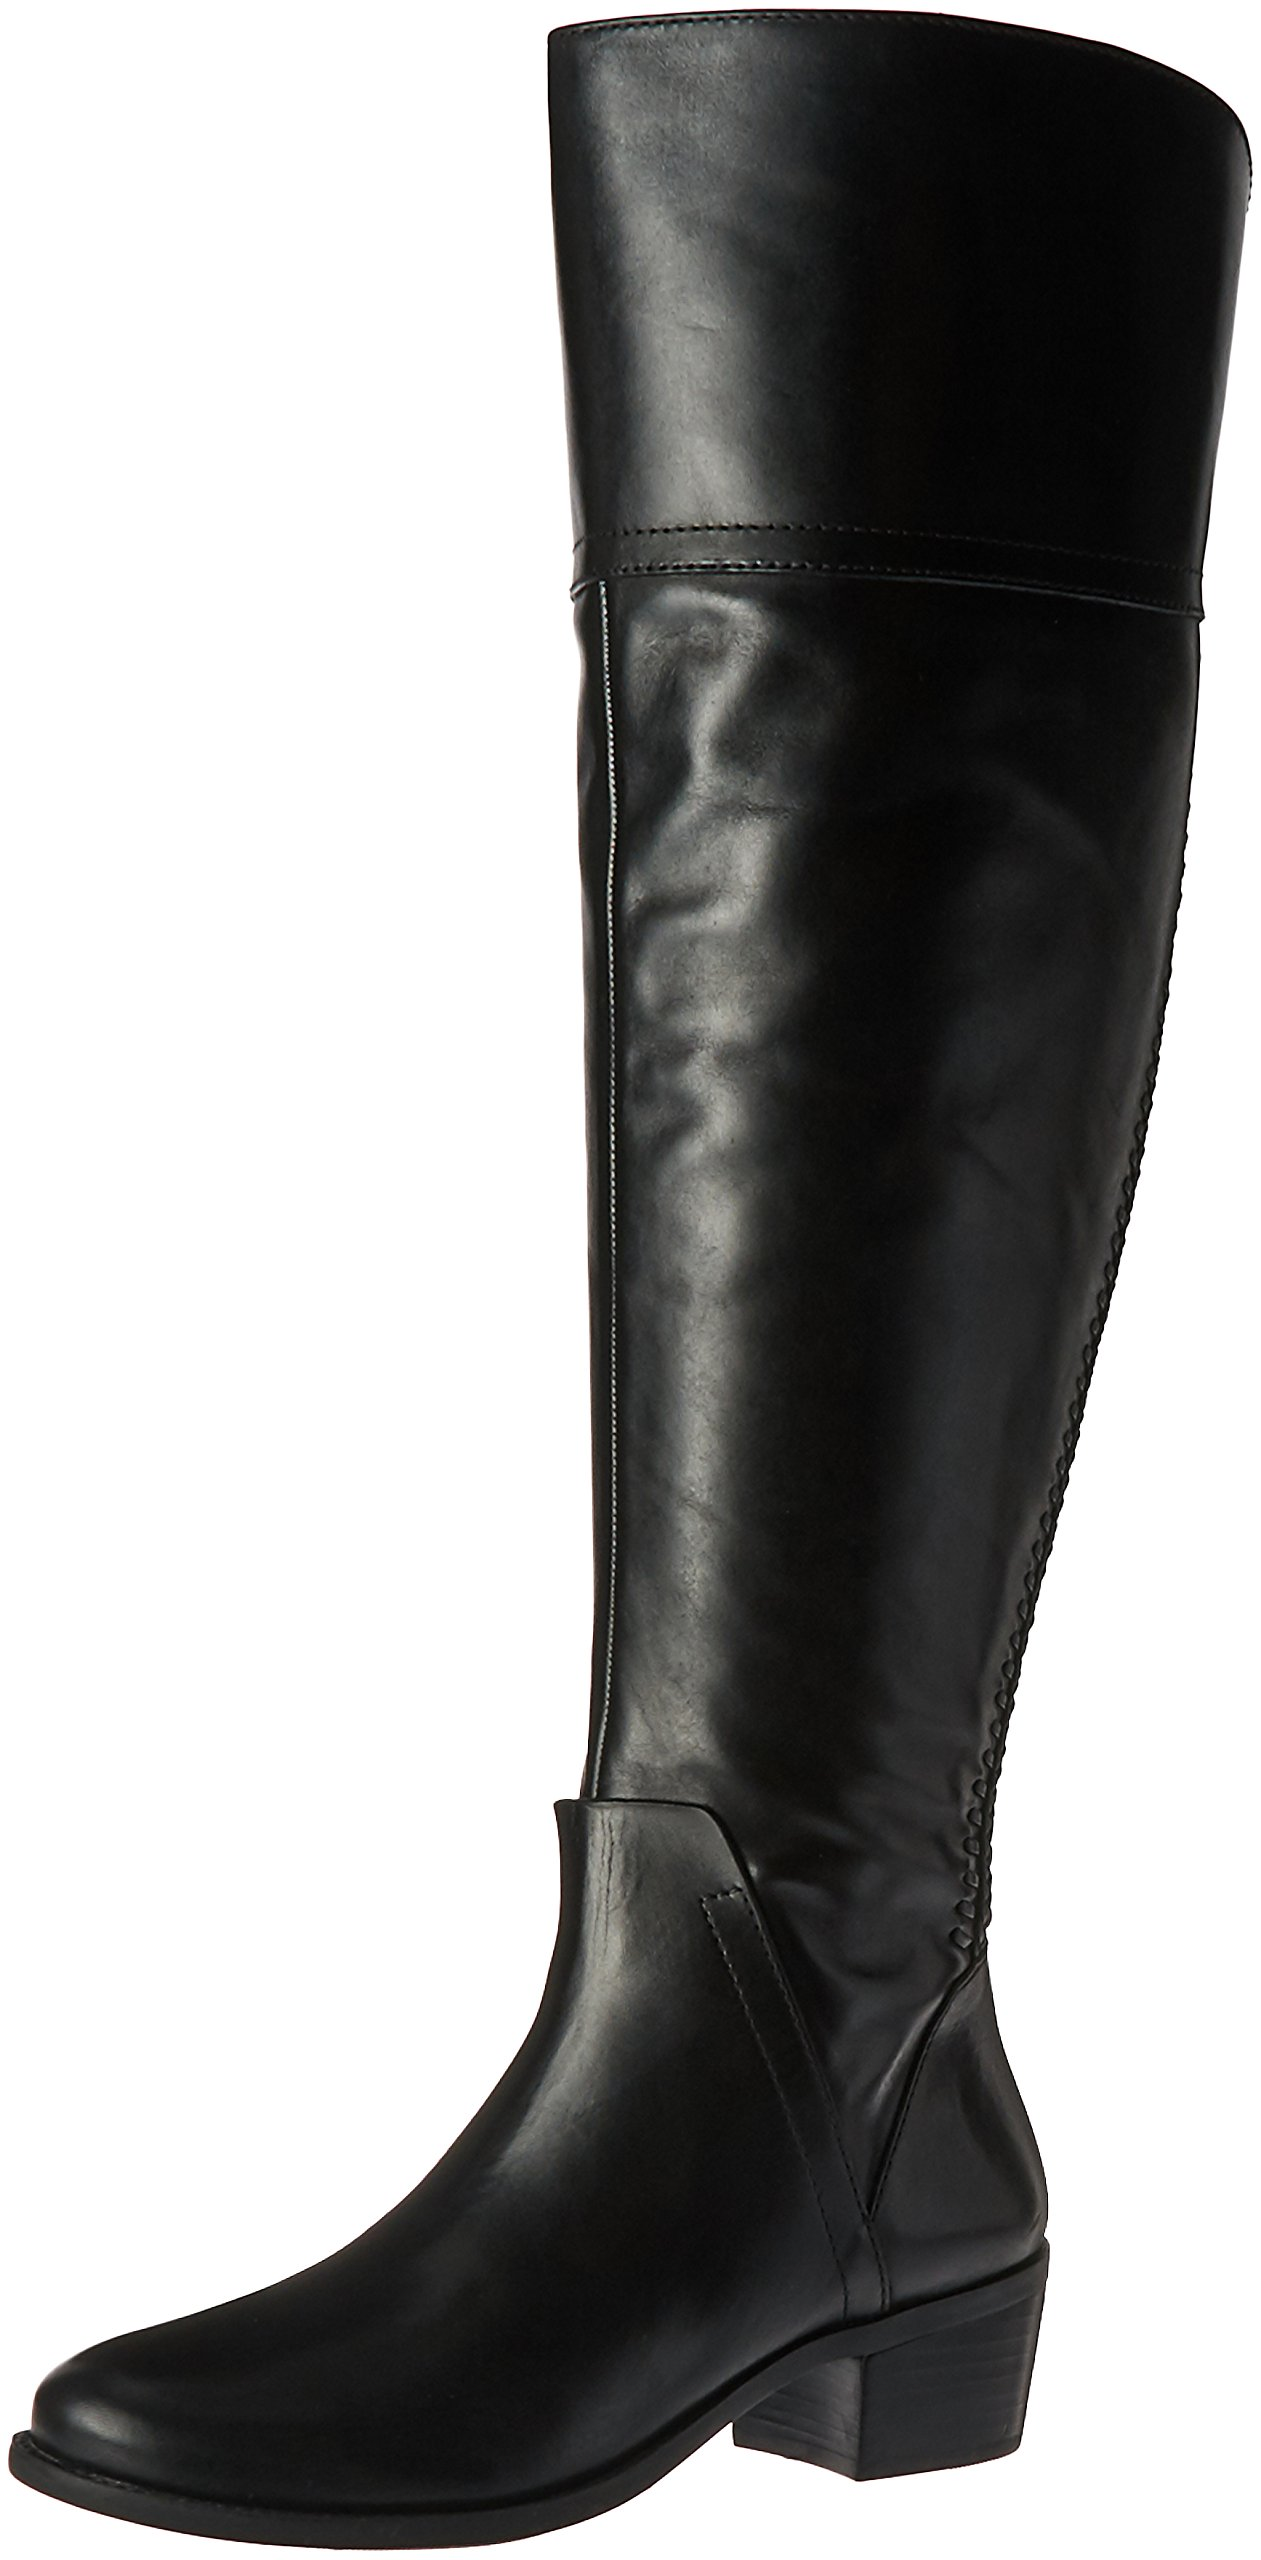 Vince Camuto Women's Bendra Riding Boot, Black/Wide Calf, 5.5 M US